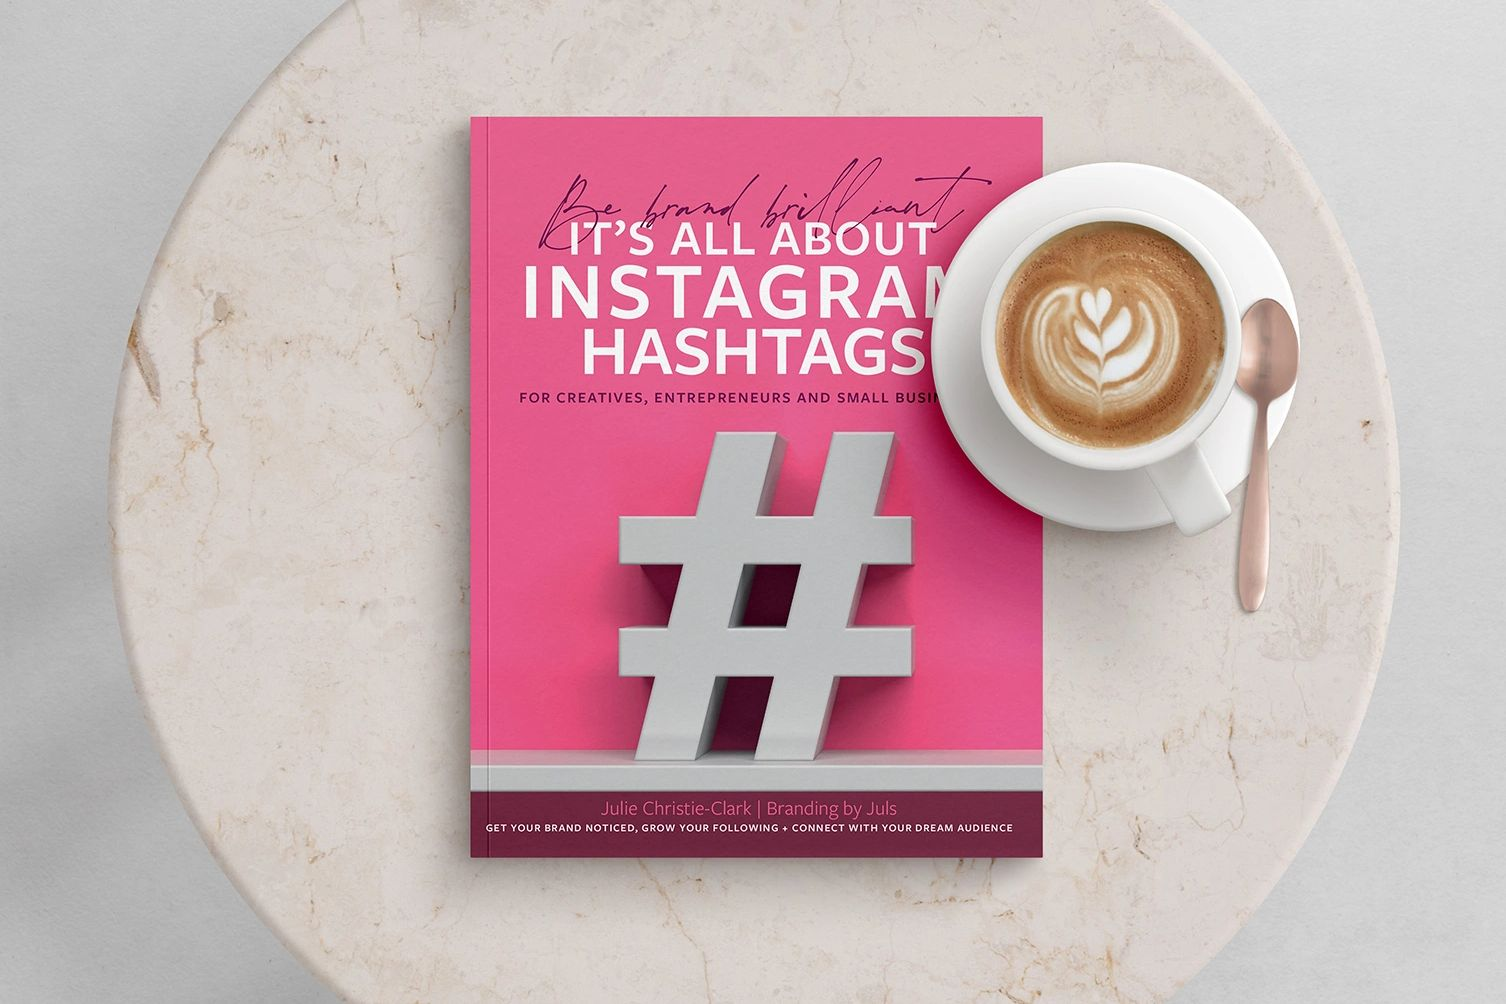 Be brand brilliant It's all about Instagram Hashtags book sitting on a coffee table with coffee cup